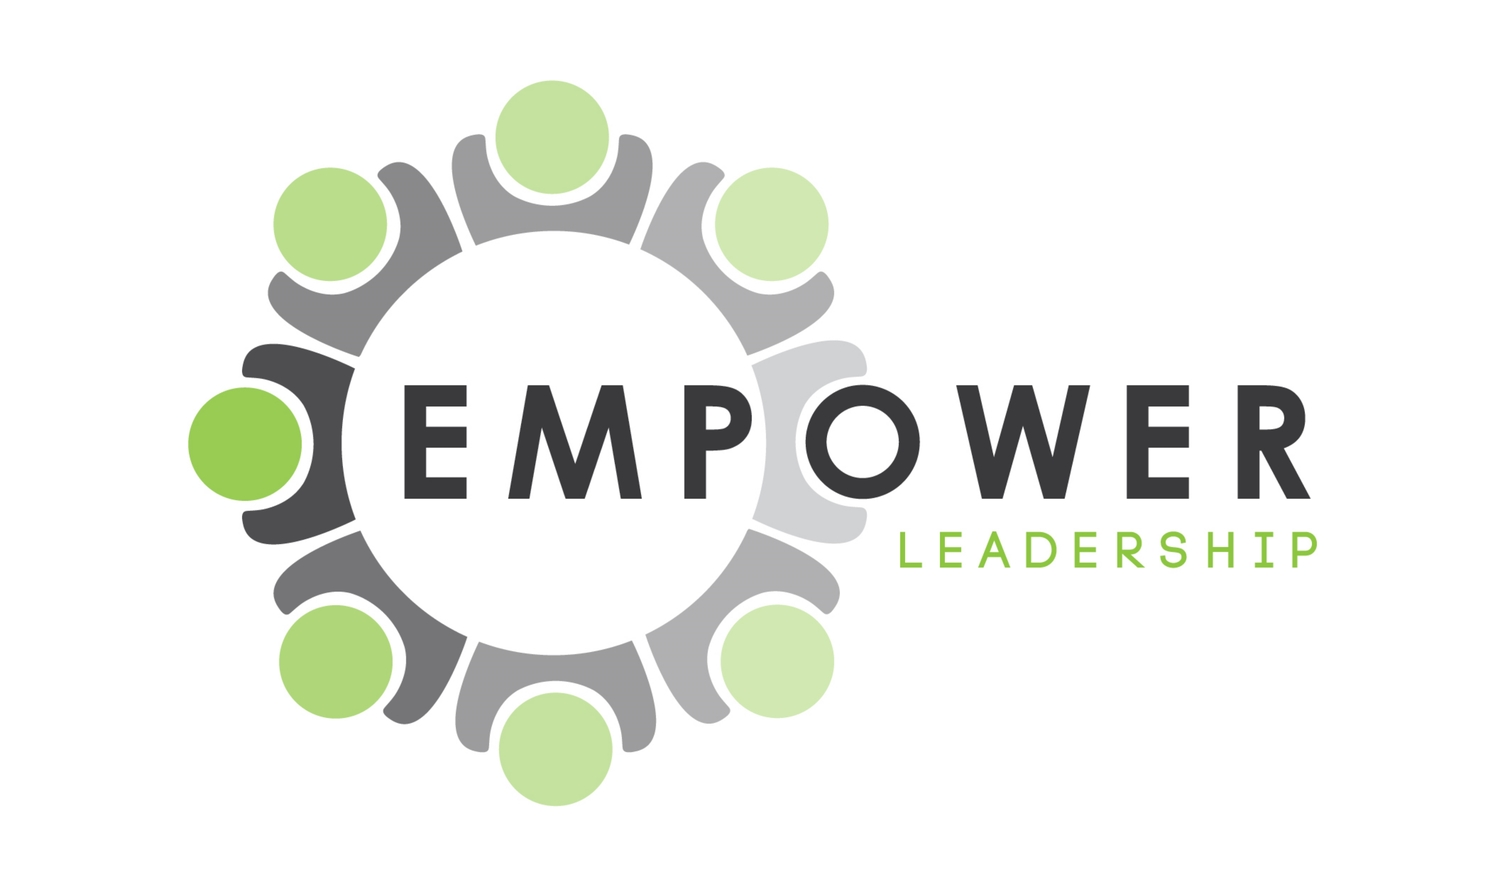 Empower Leadership